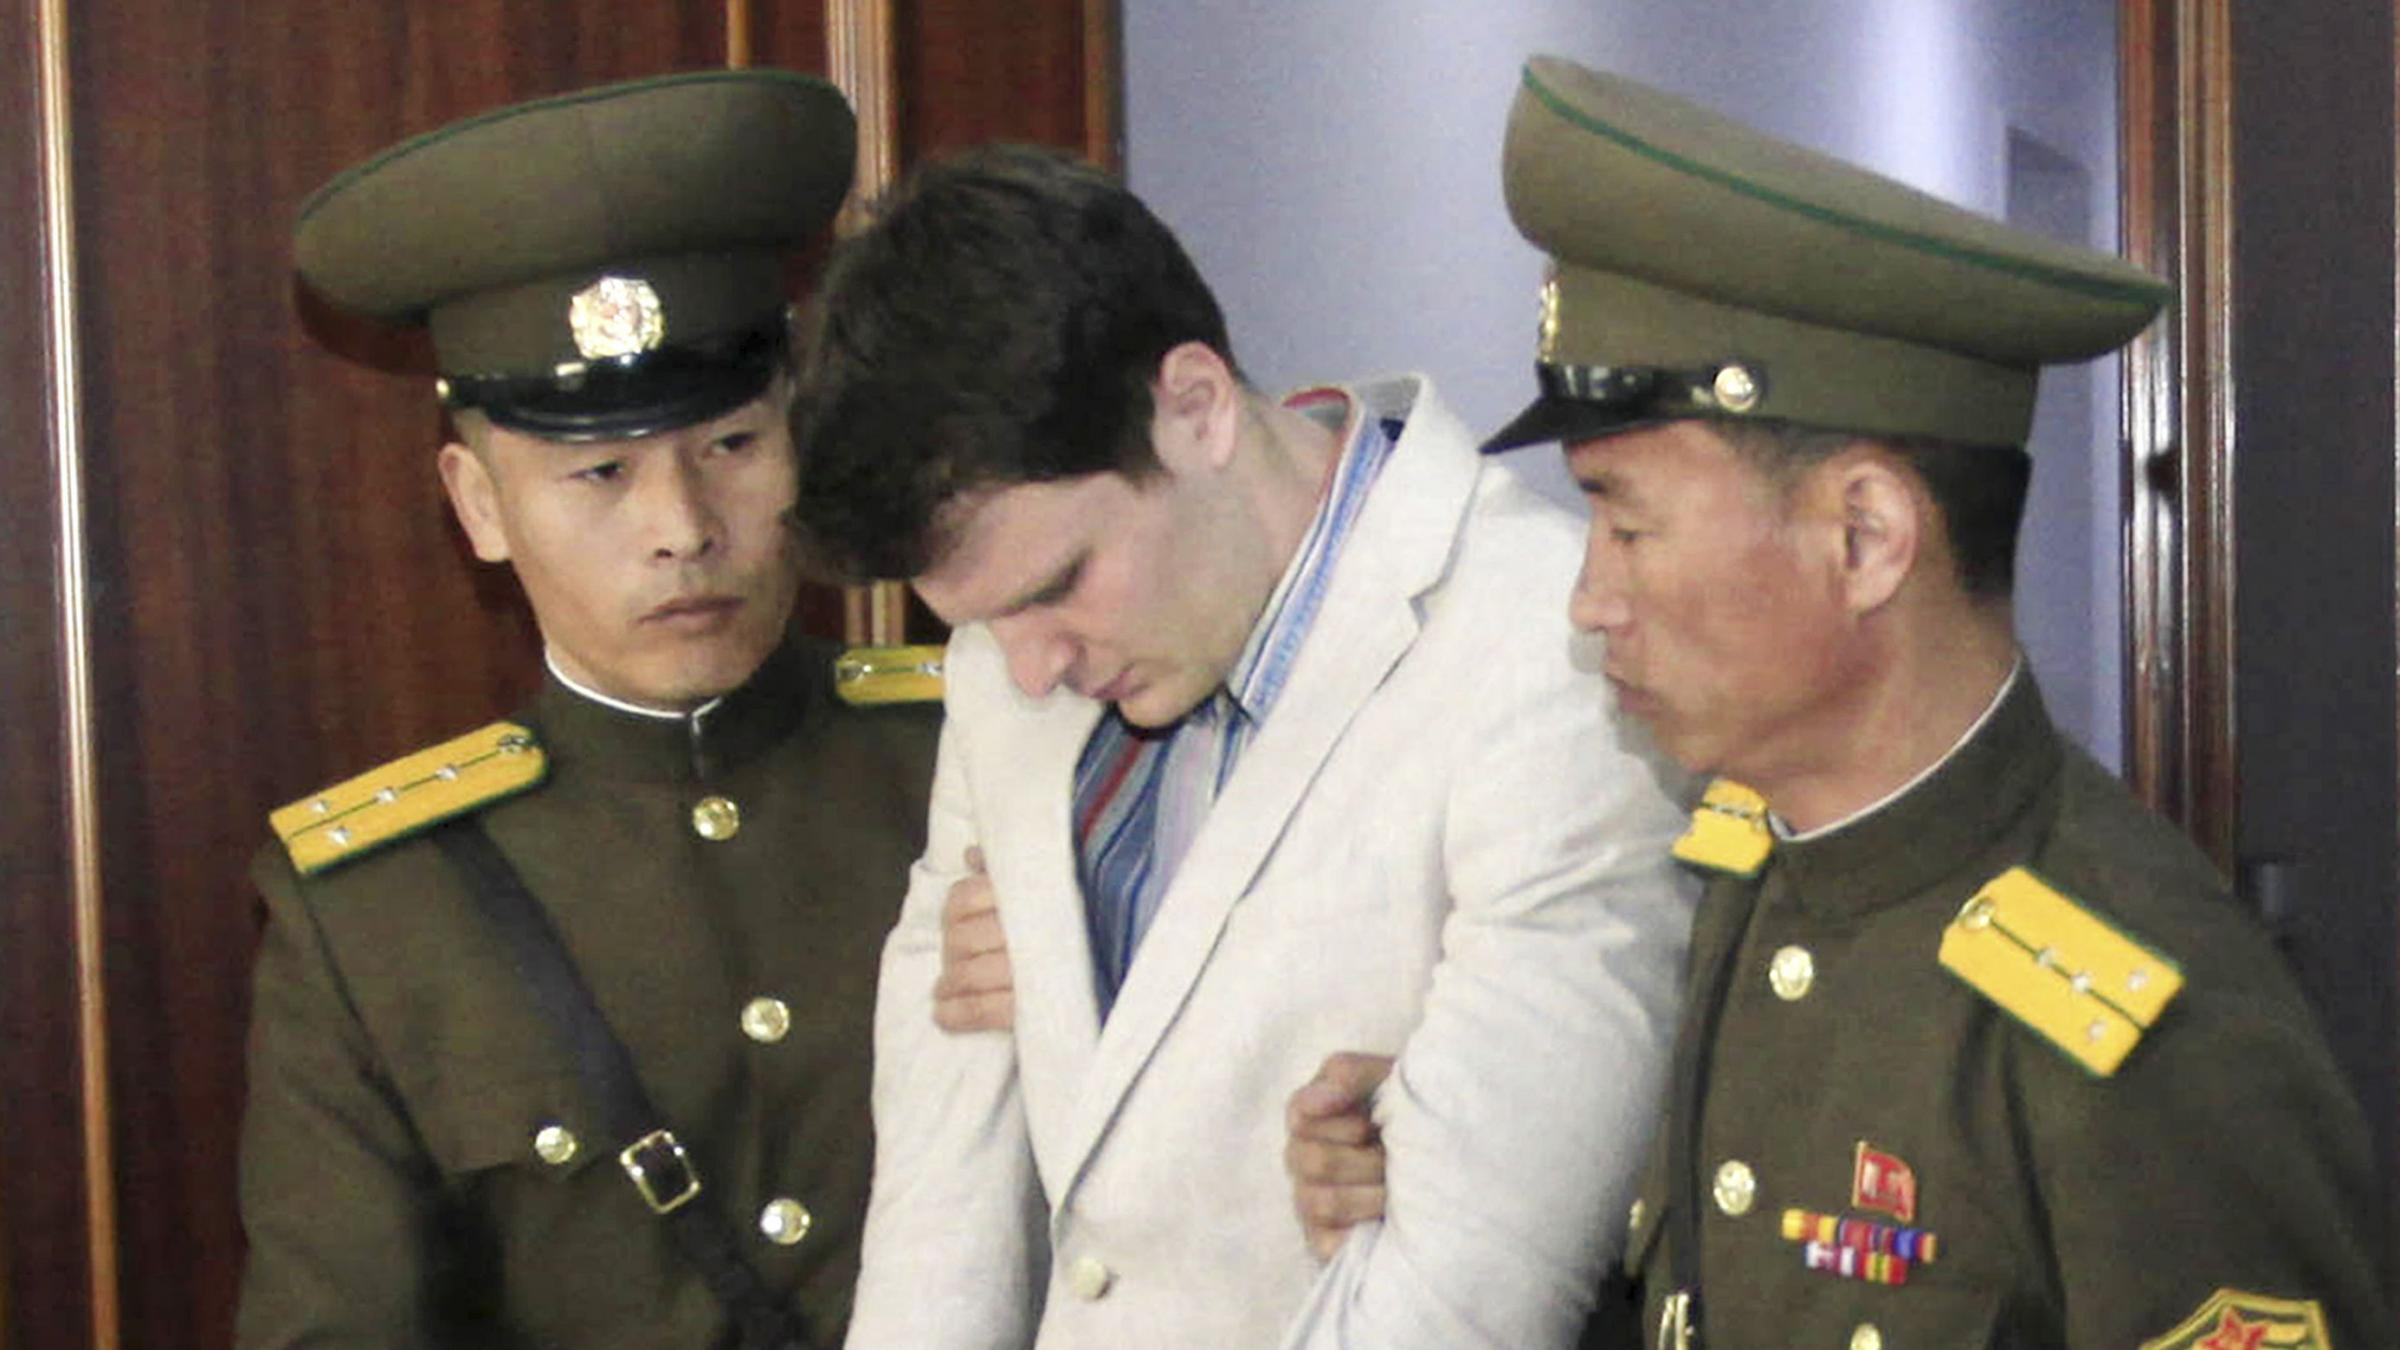 U.S. doctors dispute North Korean coma story